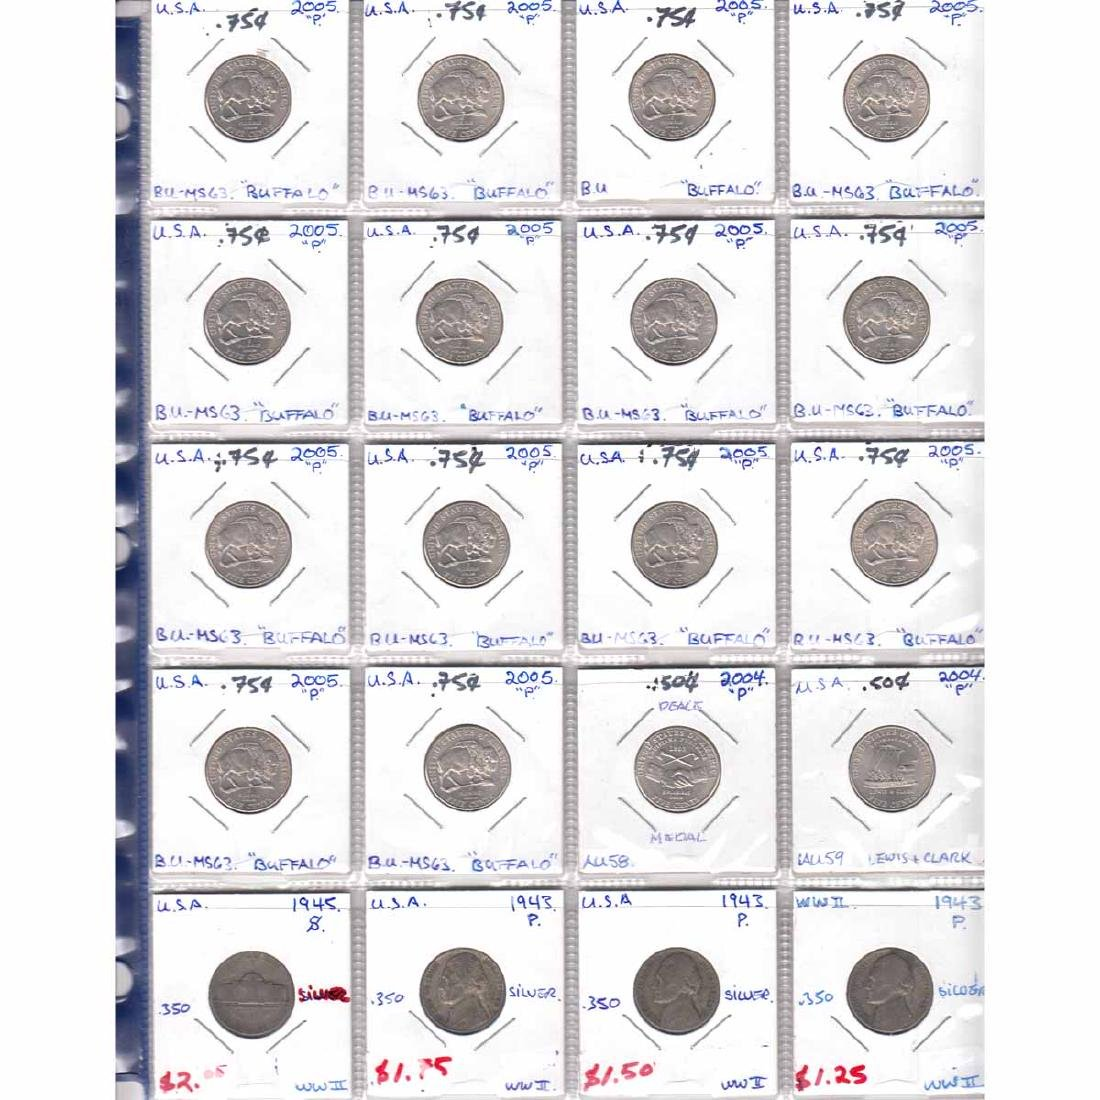 Collection of United States Coins dated 1942-2015. You - 5